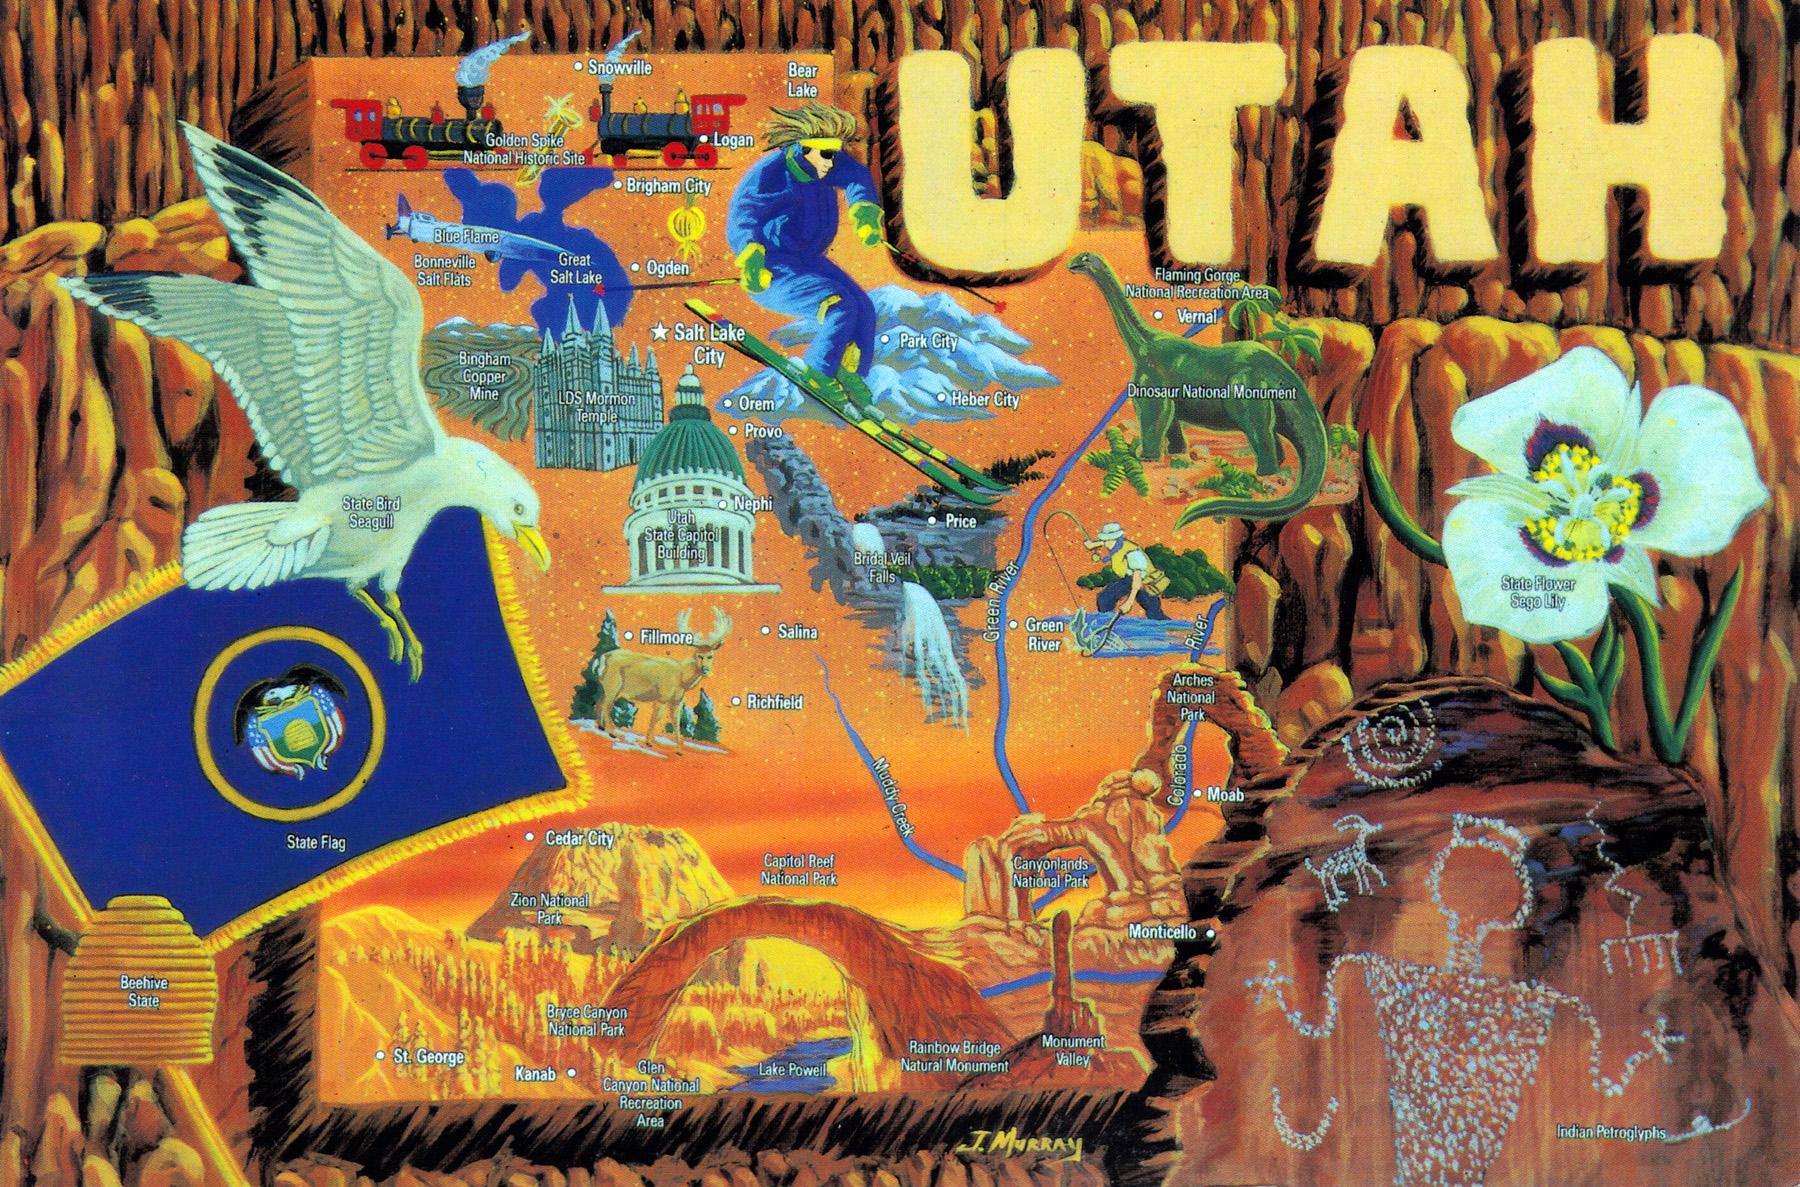 {Large detailed tourist illustrated map of the state of Utah – Utah Tourist Map